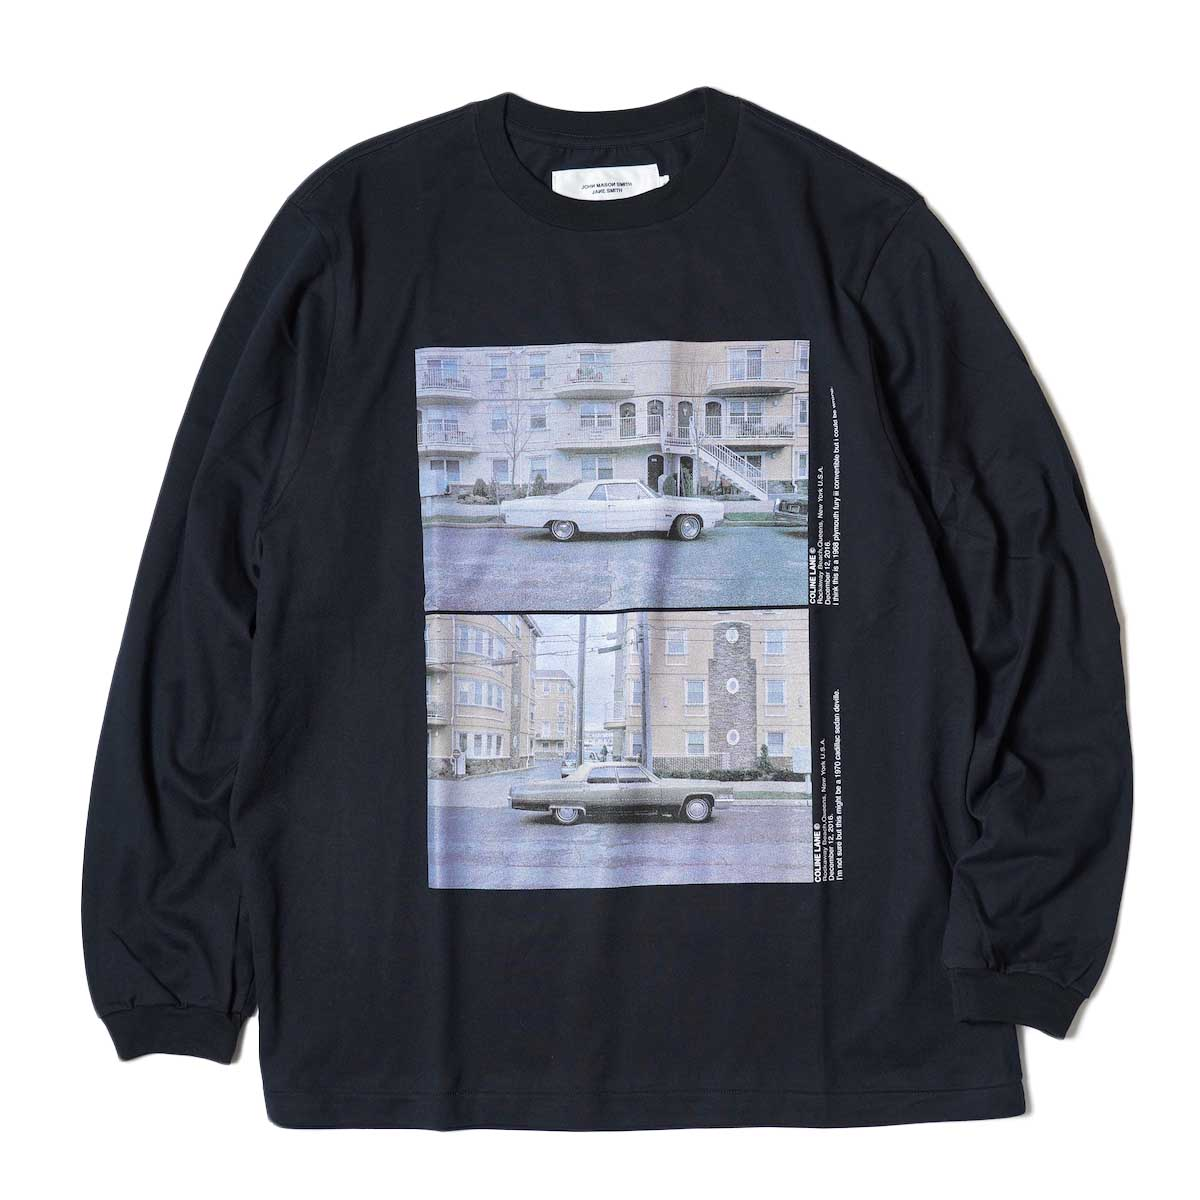 JANE SMITH / CADILLAC PLYMOUTH L/S T-Shirt (Black) 正面